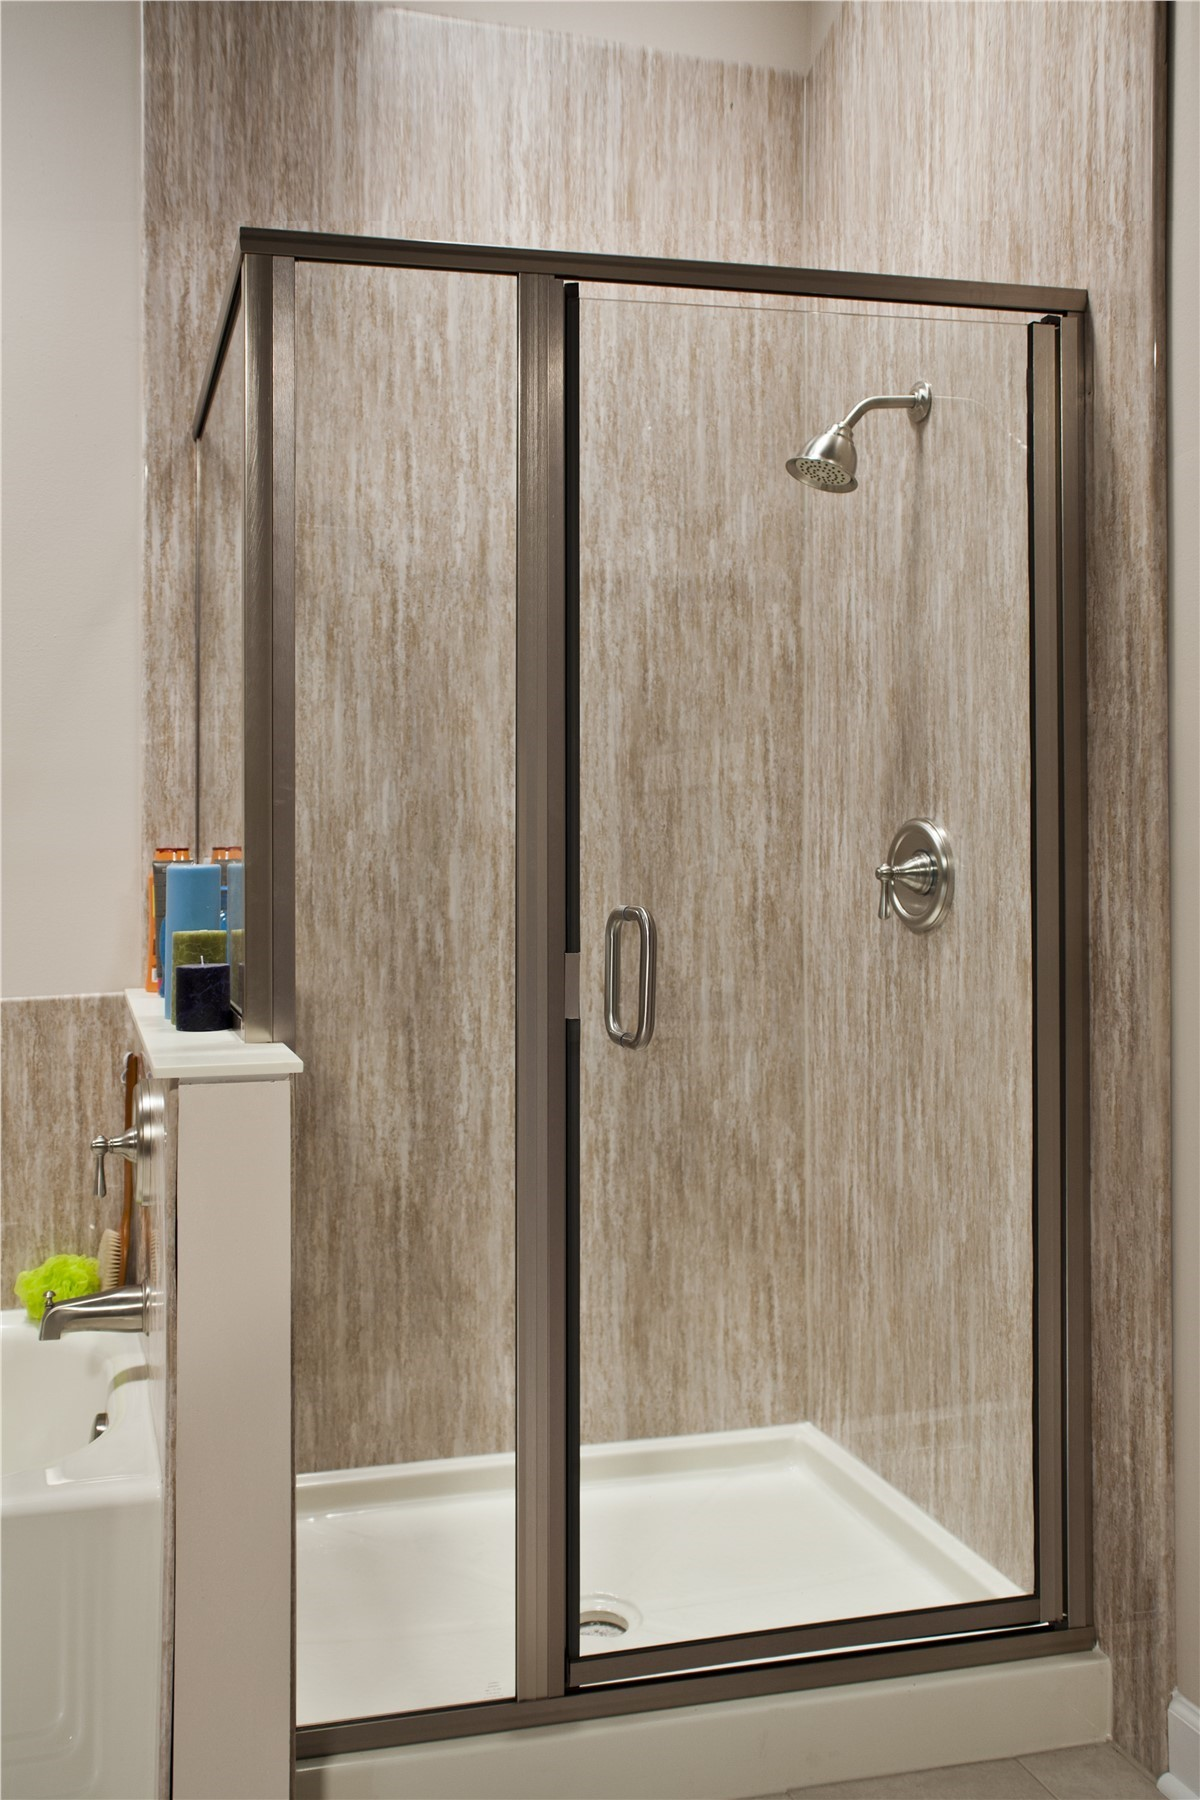 new mexico shower doors shower doors nm full measure. Black Bedroom Furniture Sets. Home Design Ideas